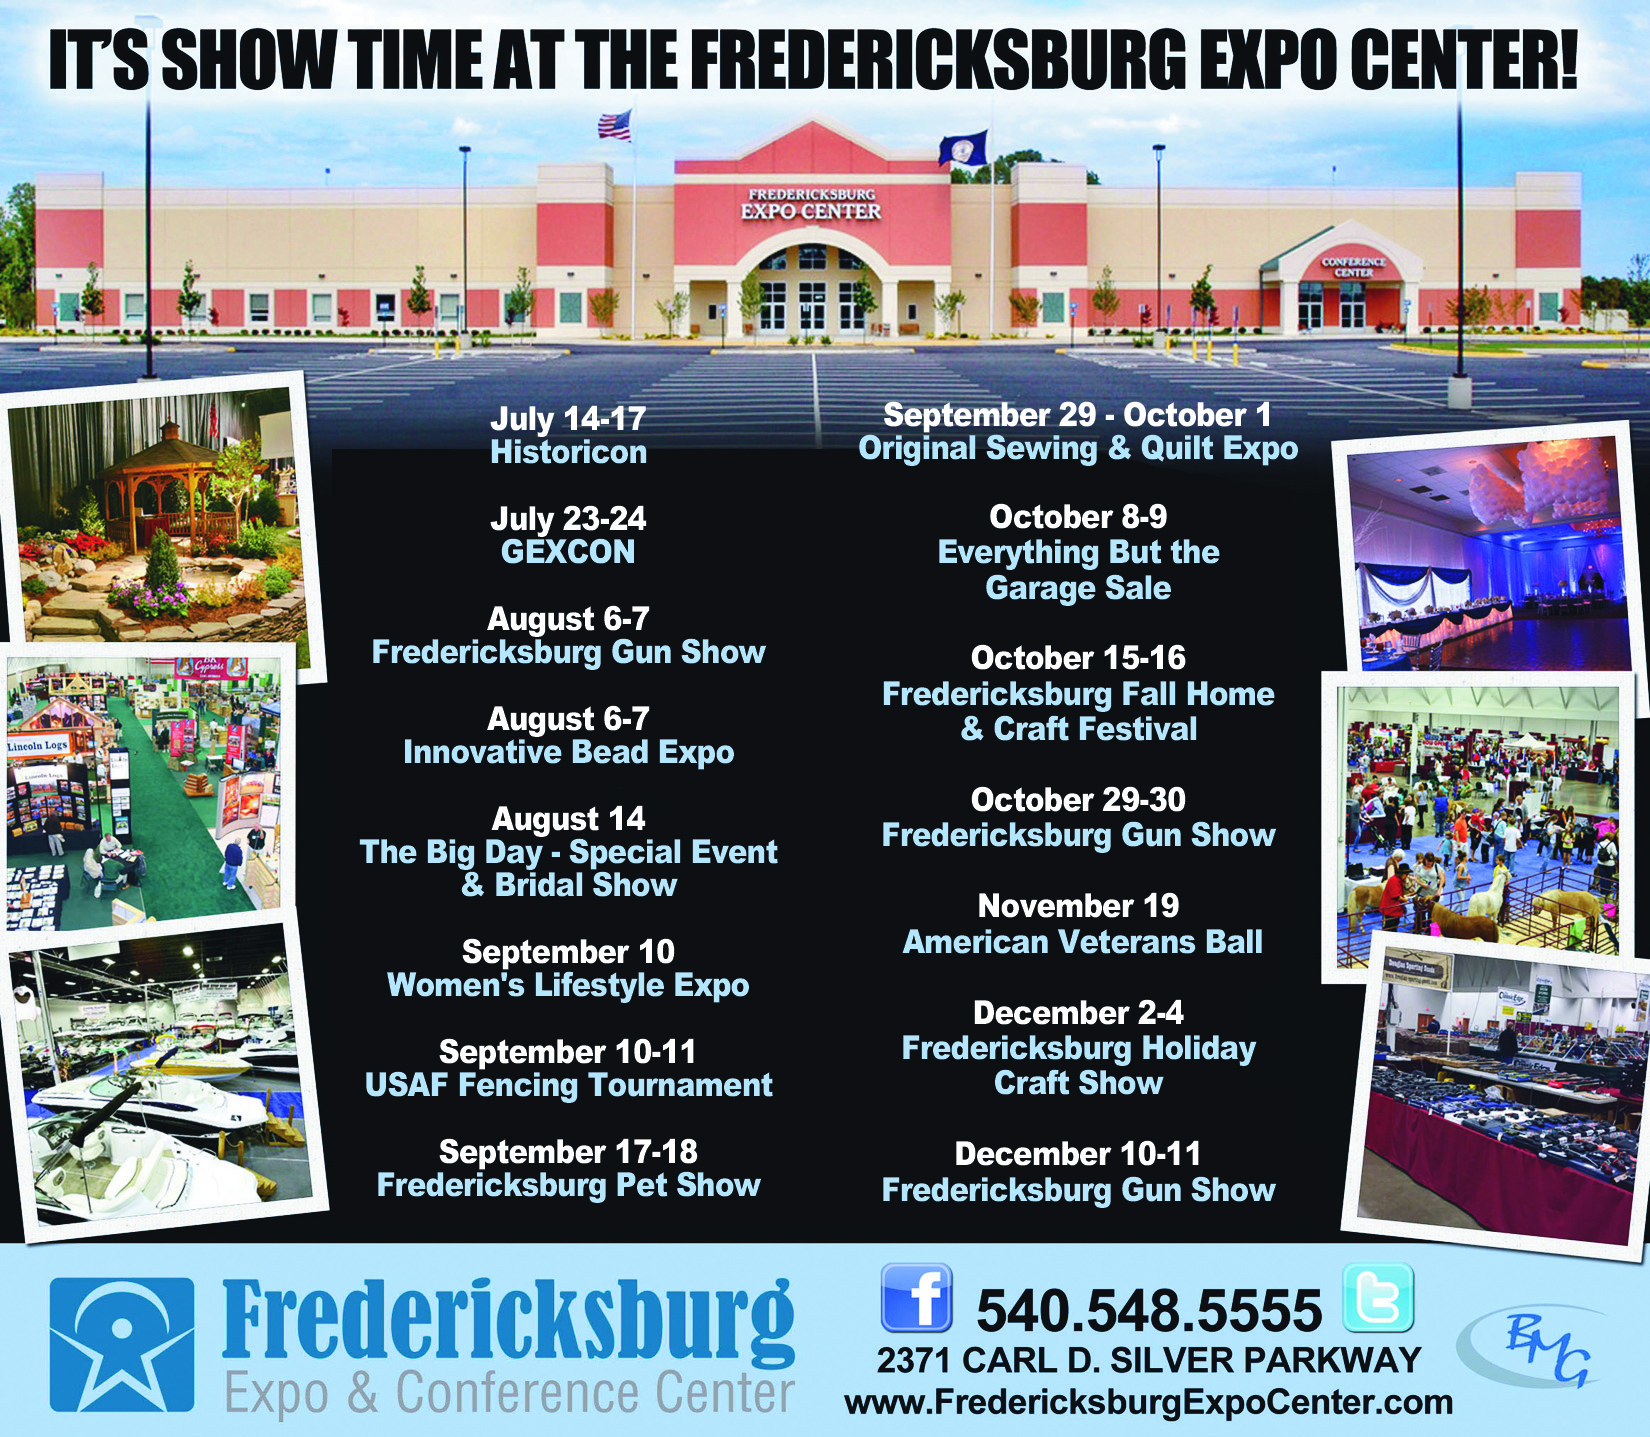 Fredericksburg Expo Center